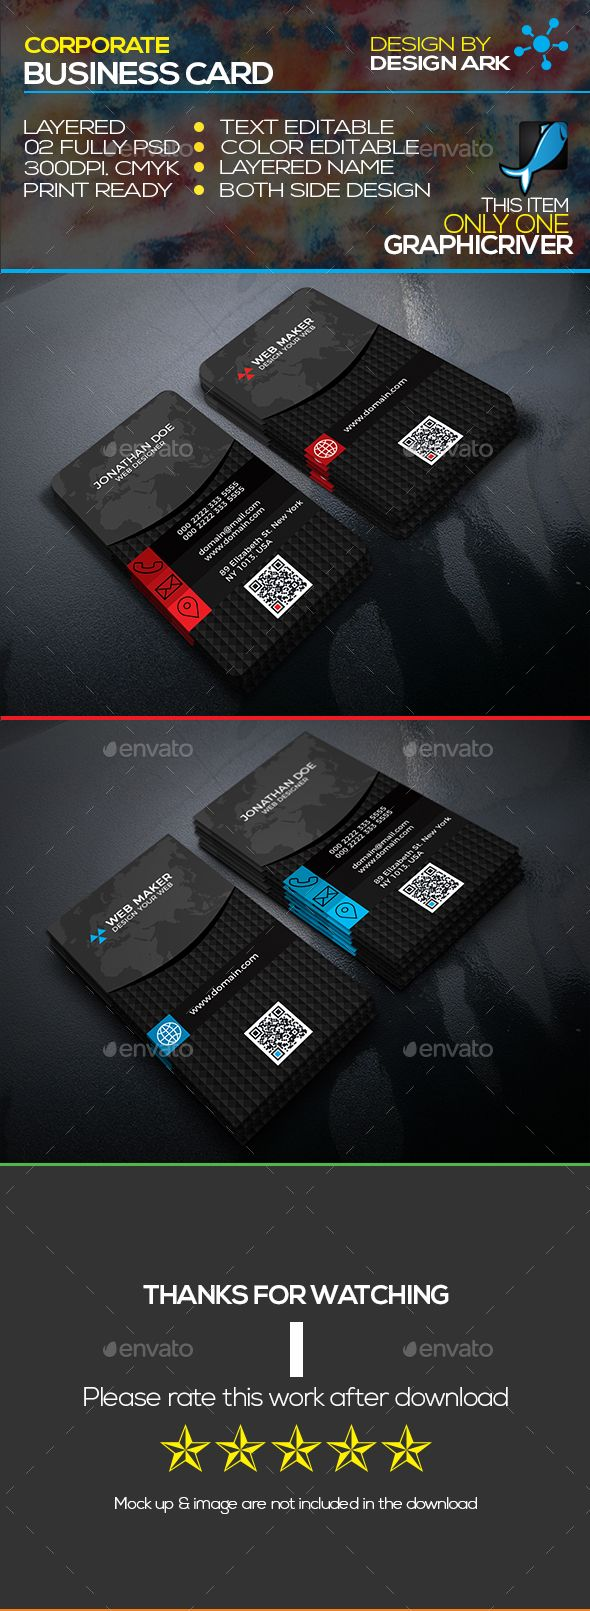 Creative Business Card - Business Cards Print Templates Download here: https://graphicriver.net/item/creative-business-card/20137916?ref=classicdesignp